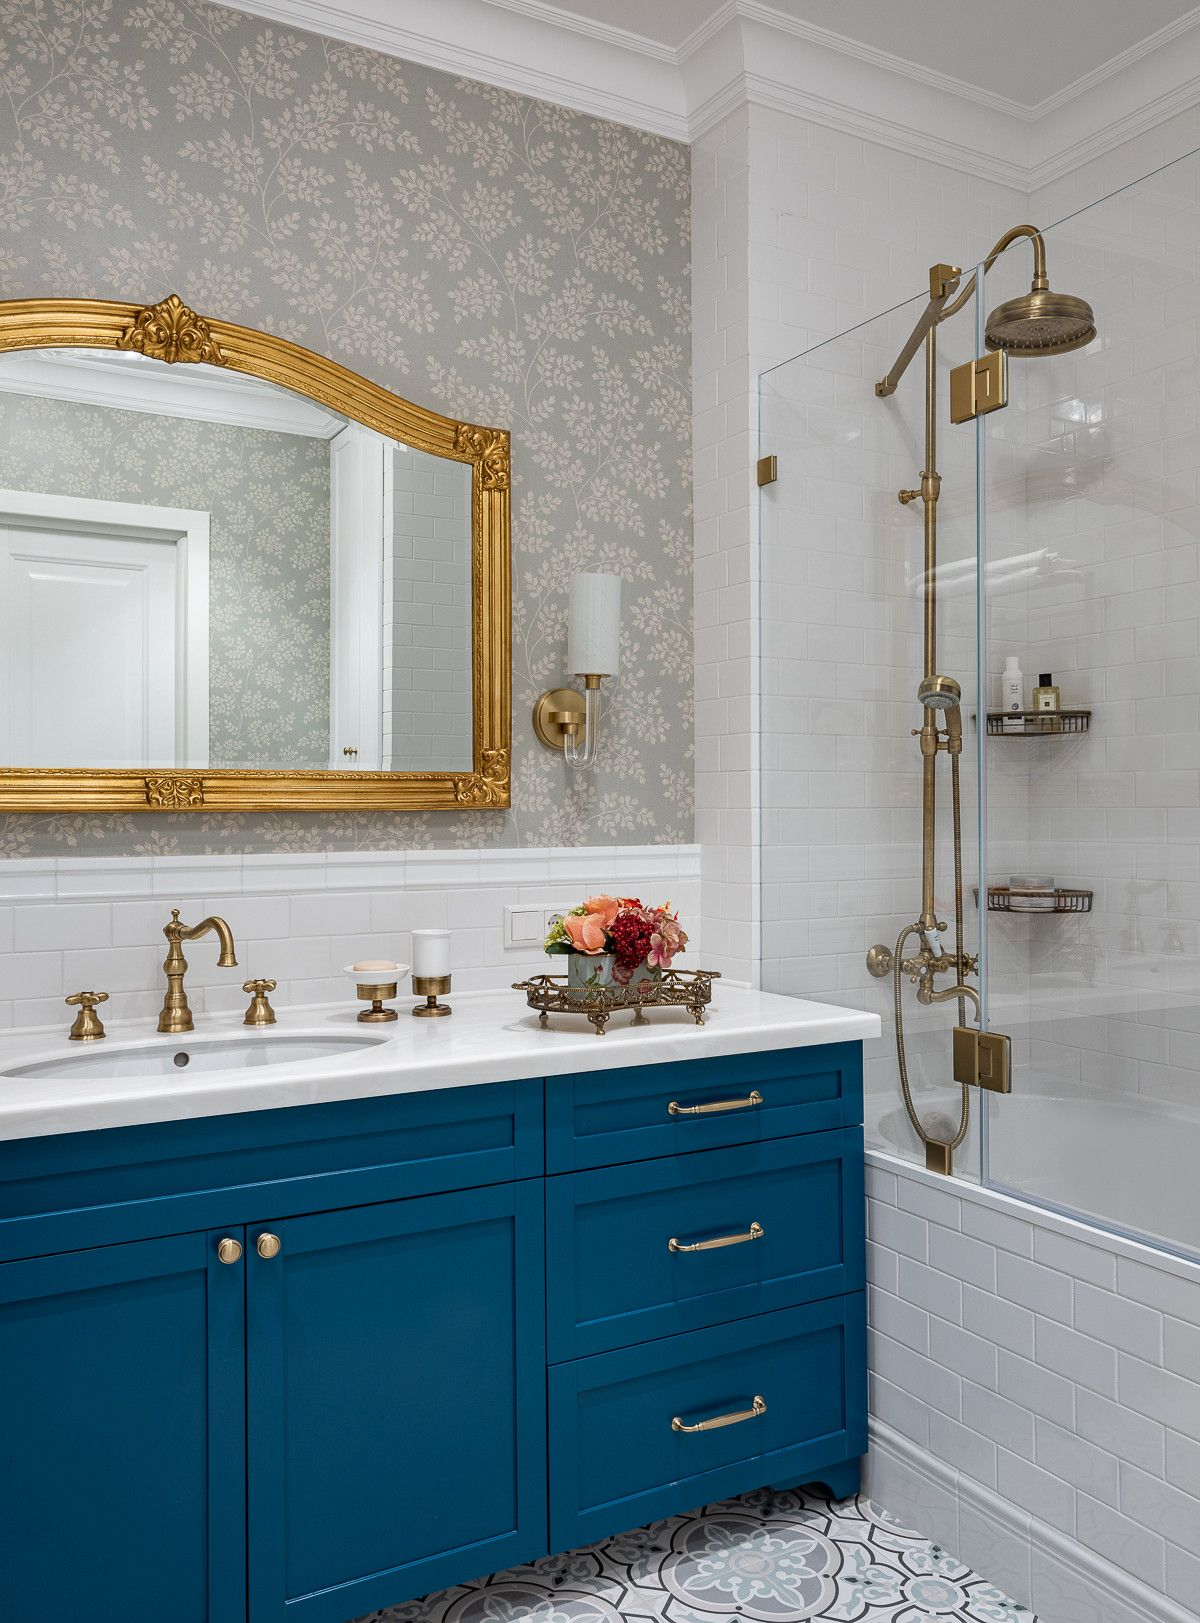 Modern bathroom in white with blue vanity and a mirror that features golden frame